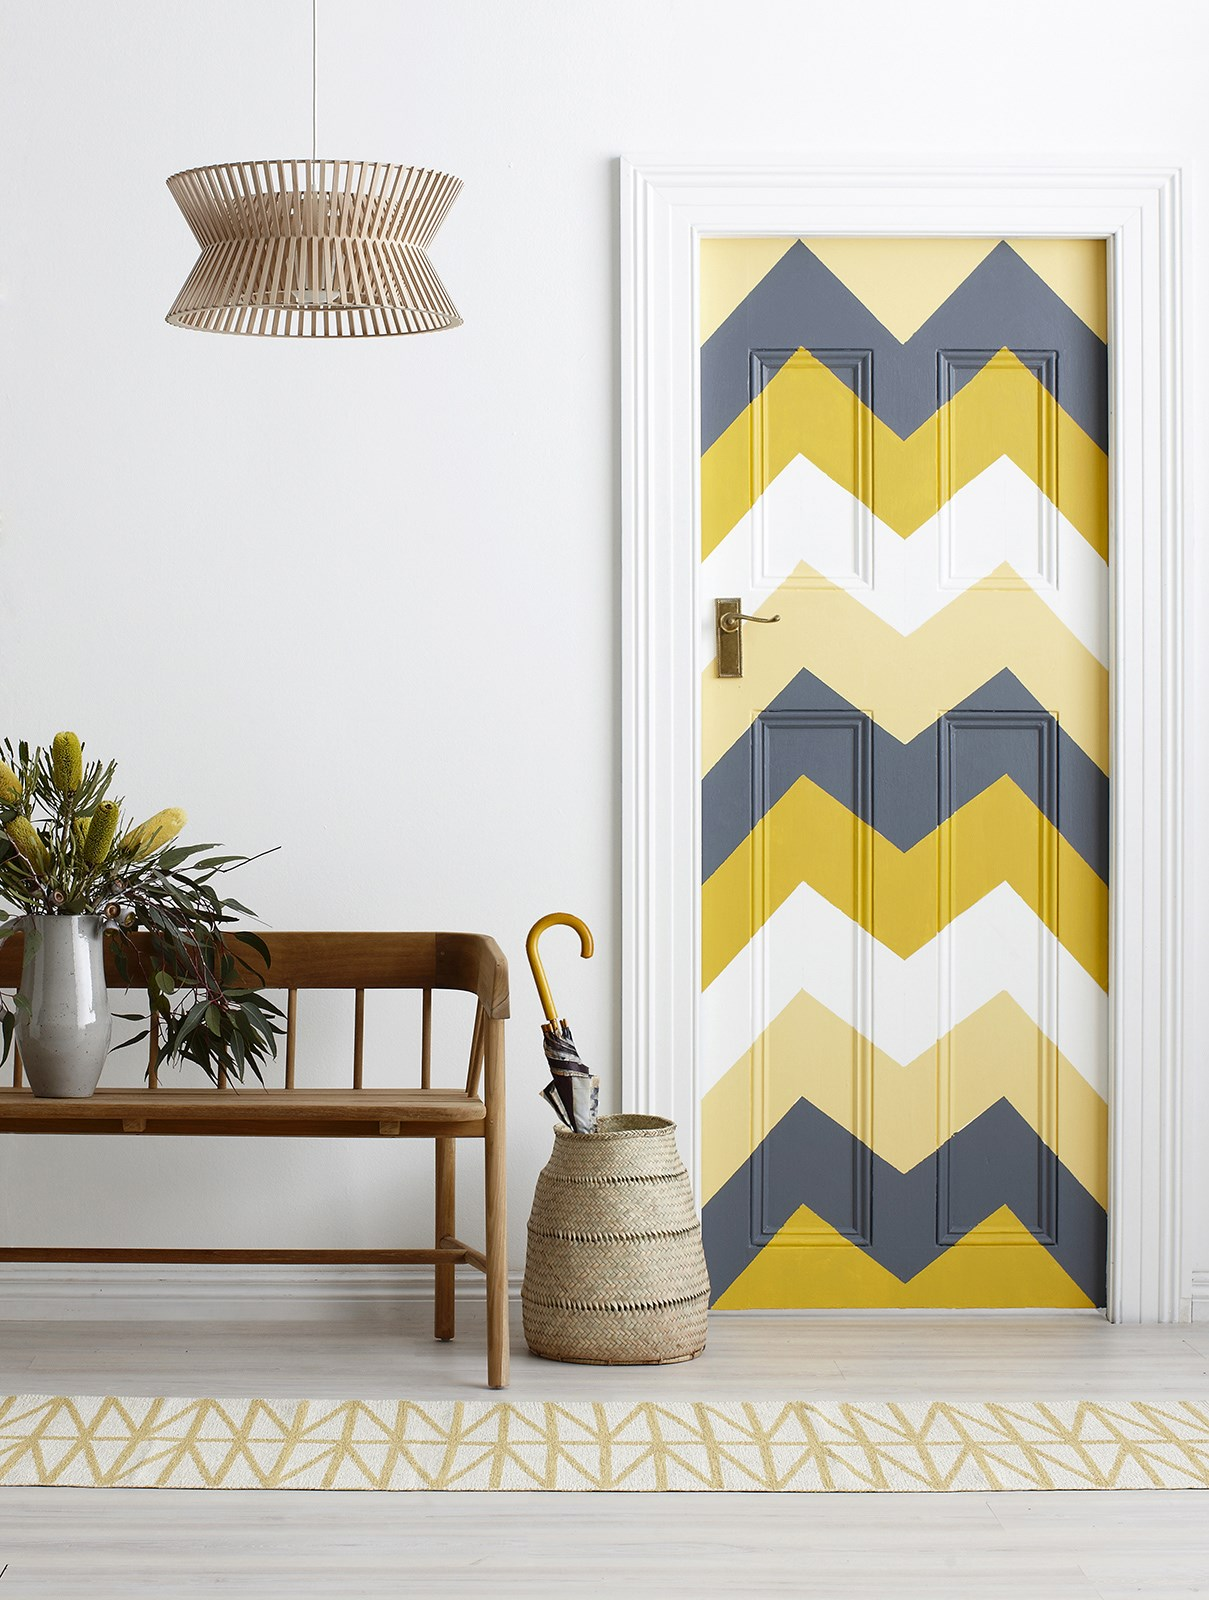 """Elevate a neglected corner of your home with a [colourful paint project](http://www.homestolove.com.au/colour-palette-weekend-paint-projects-1932